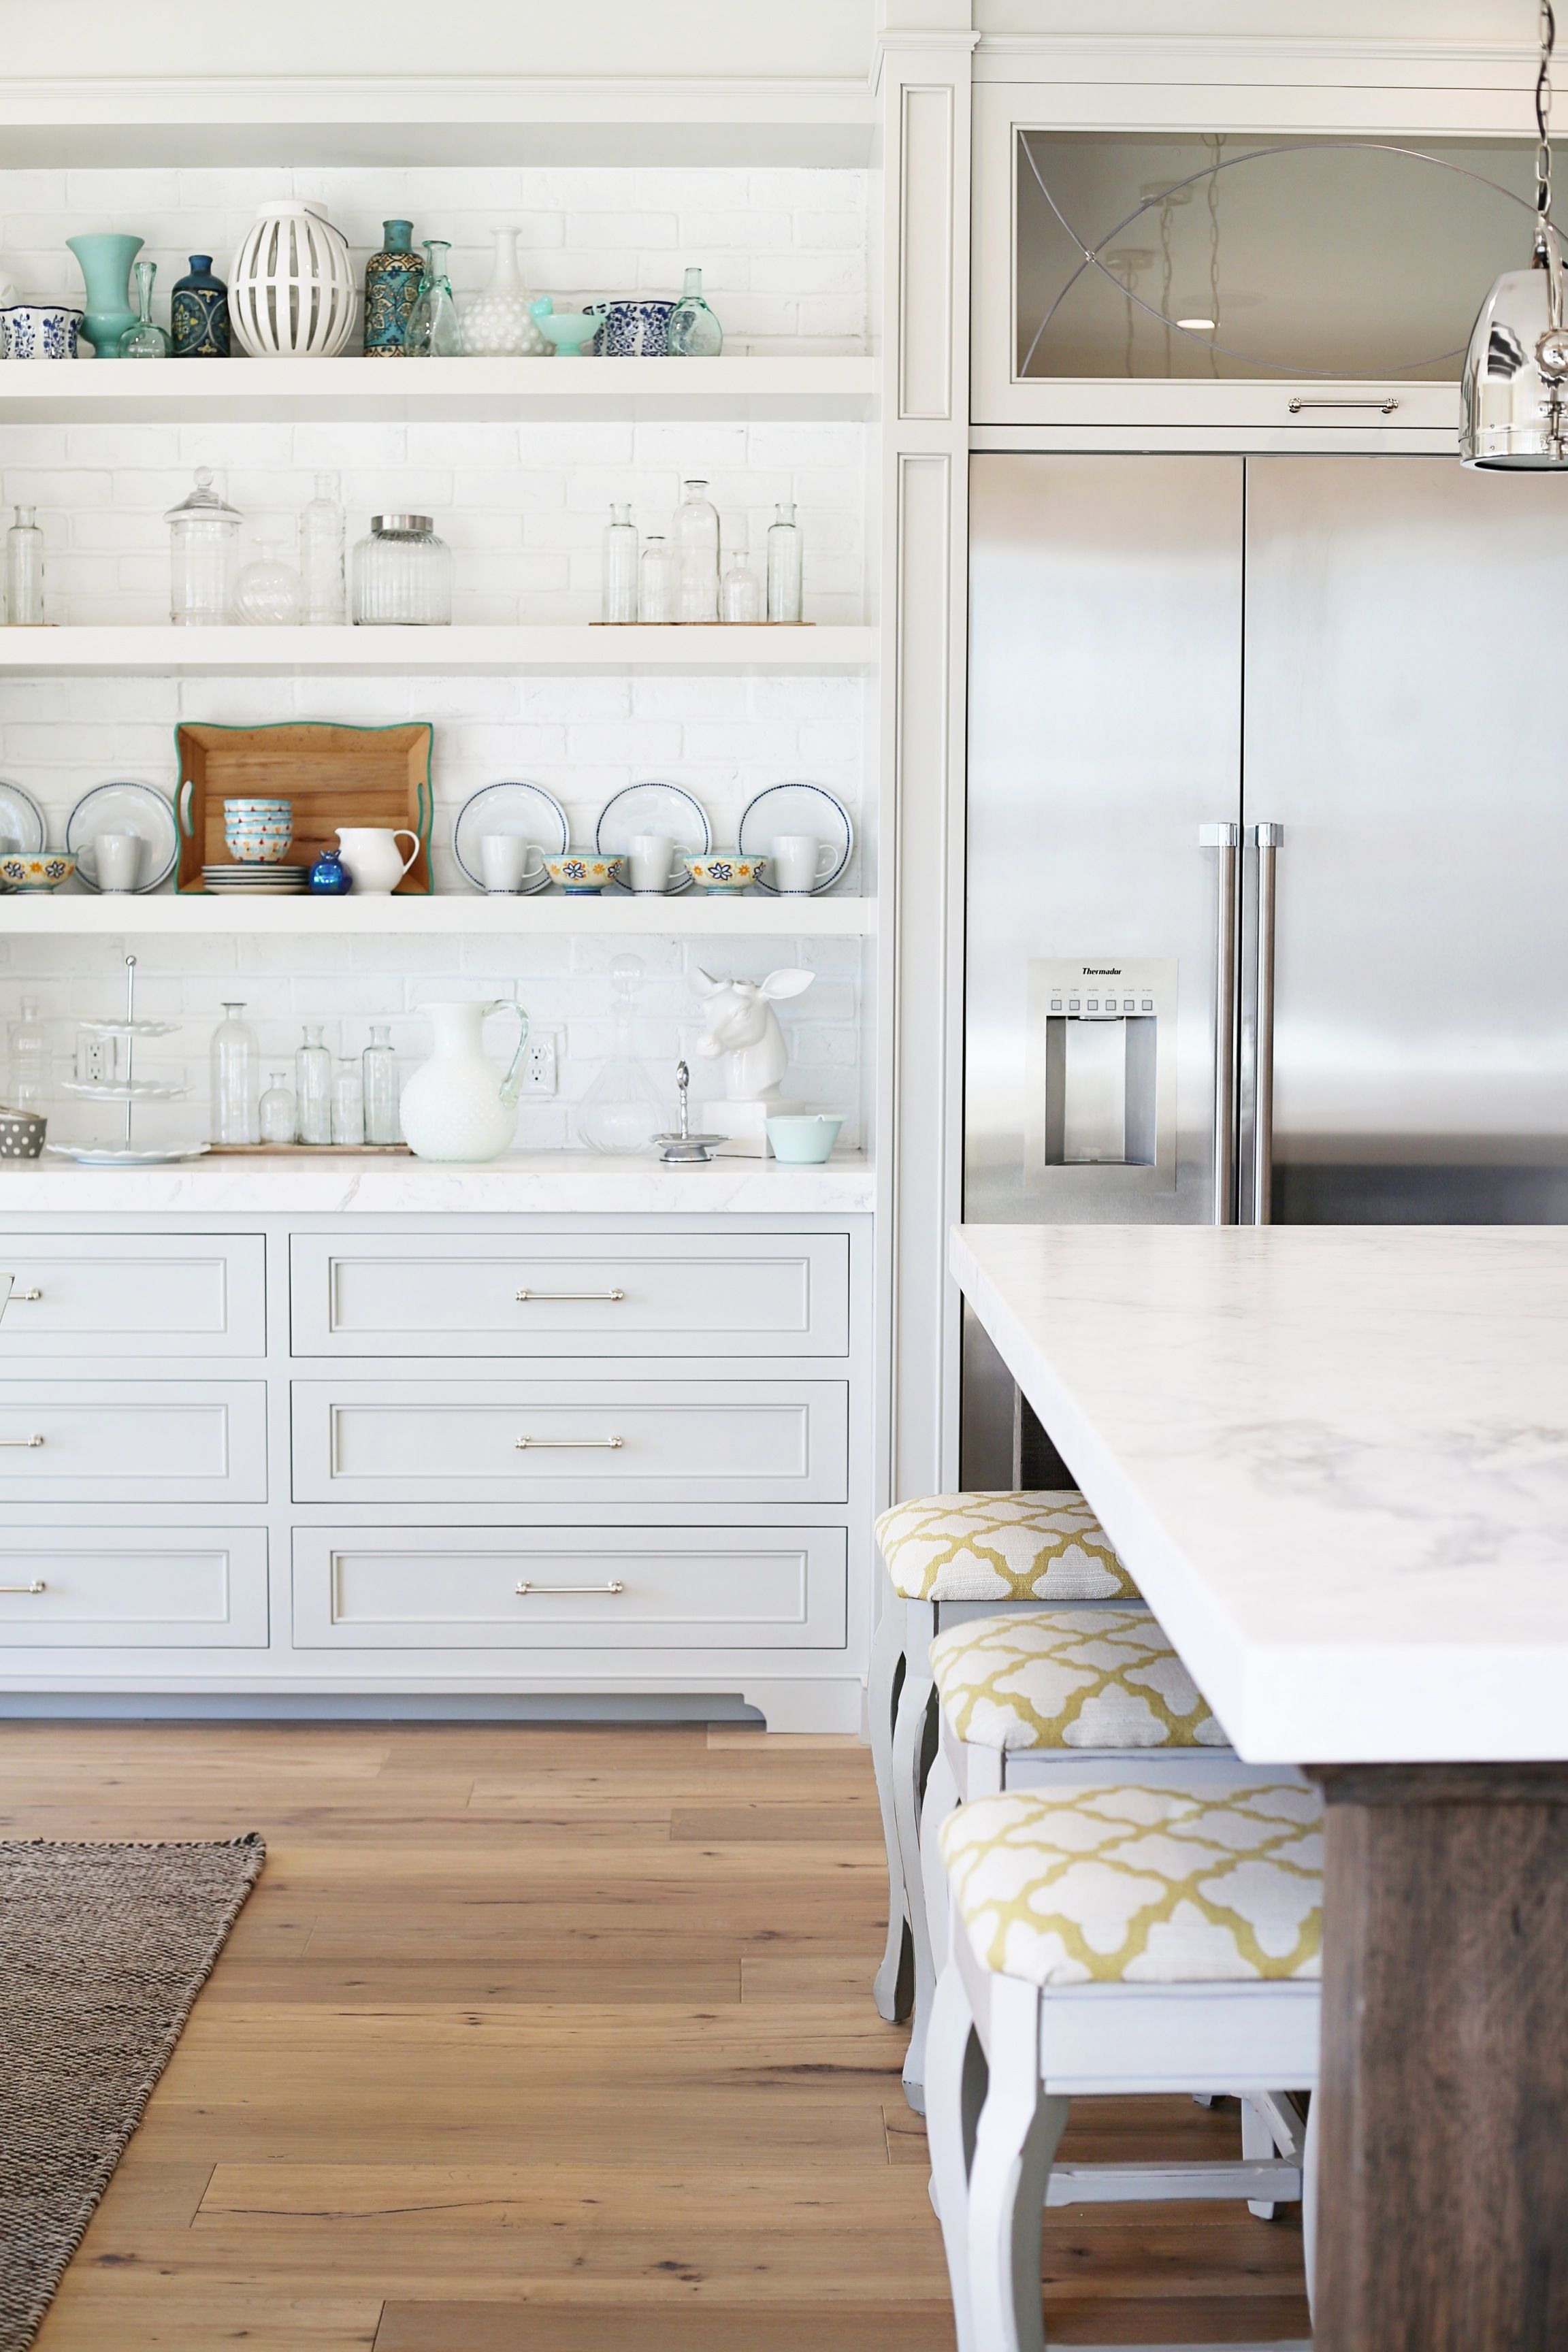 Four Chairs Furniture | Styled Built In Cabinets | Kitchen | Kitchen ...